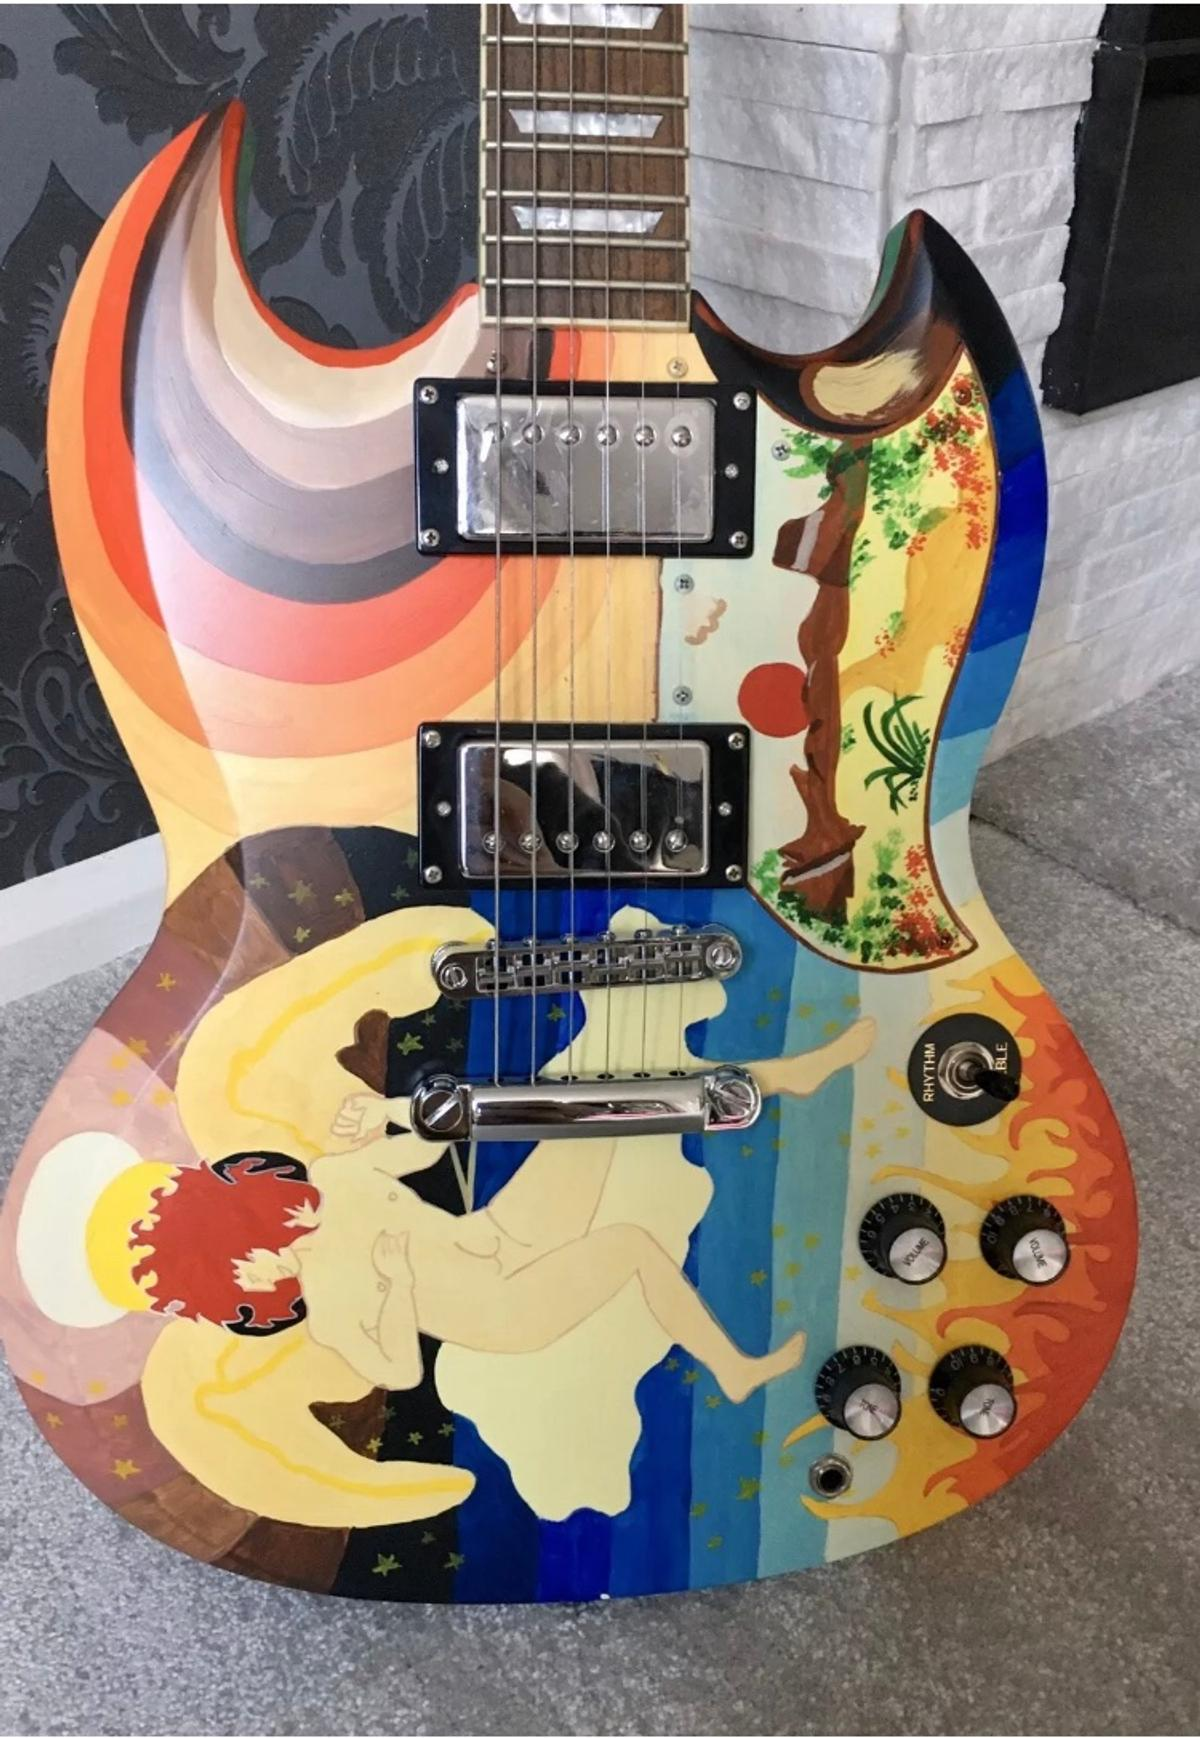 Eric Clapton The Fool Guitar With Case In Hd6 Calderdale For 750 00 For Sale Shpock